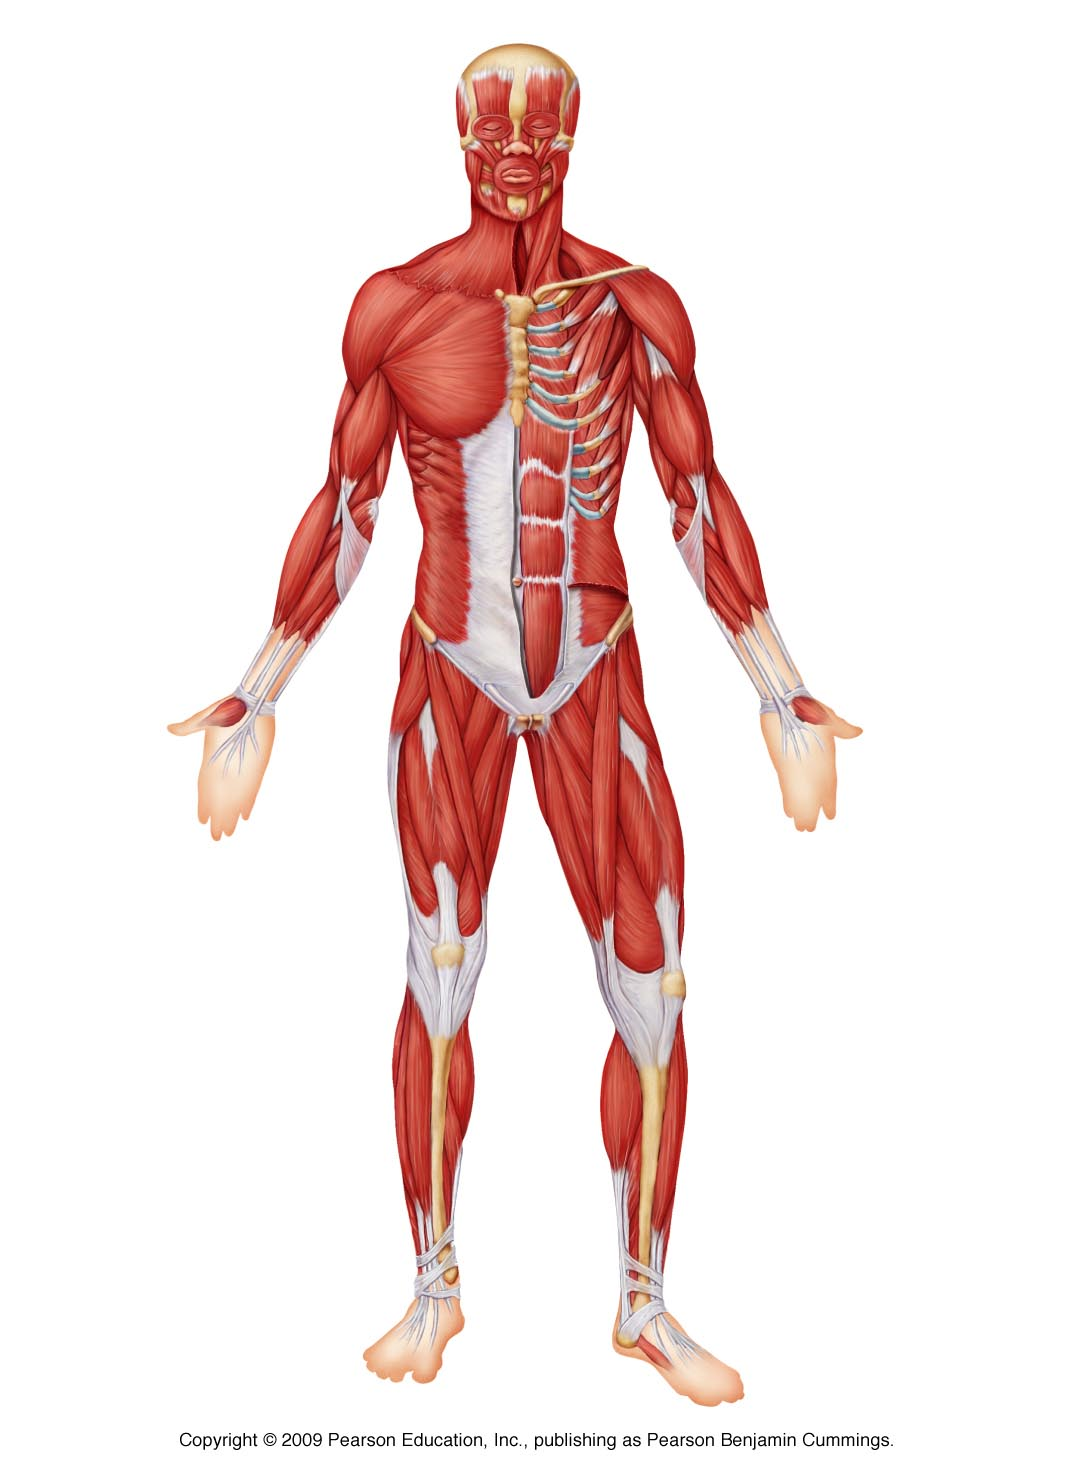 Muscles Of The Body Unlabeled